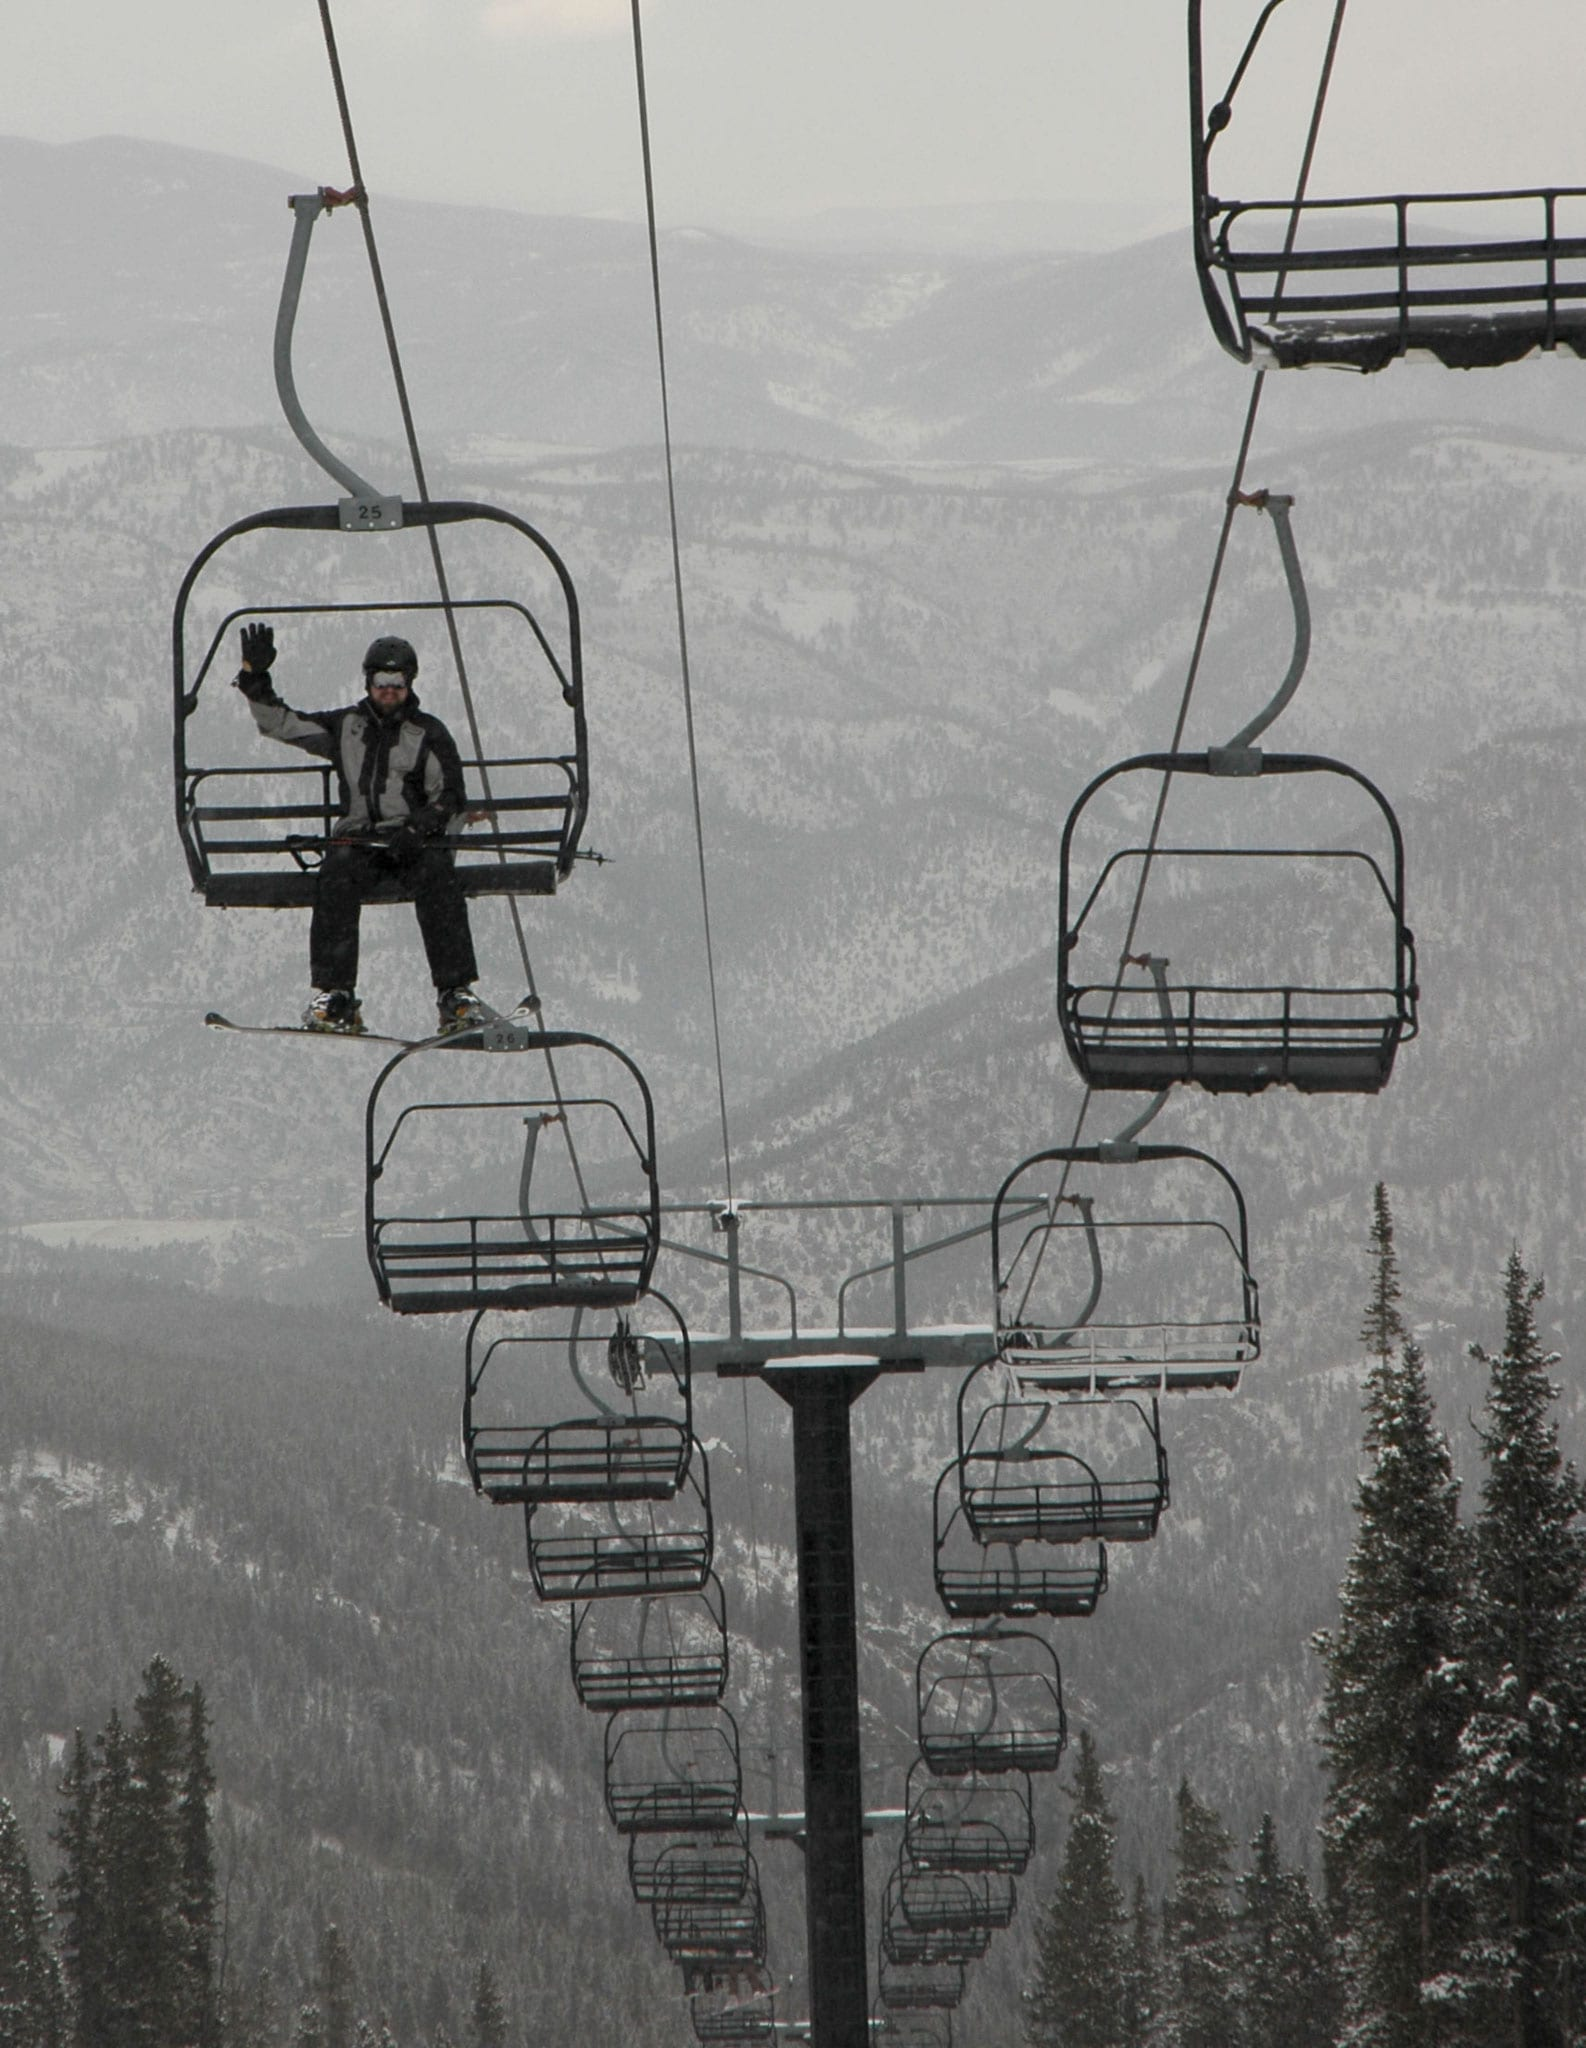 Echo Mountain Resort Chairlift Idaho Springs Colorado